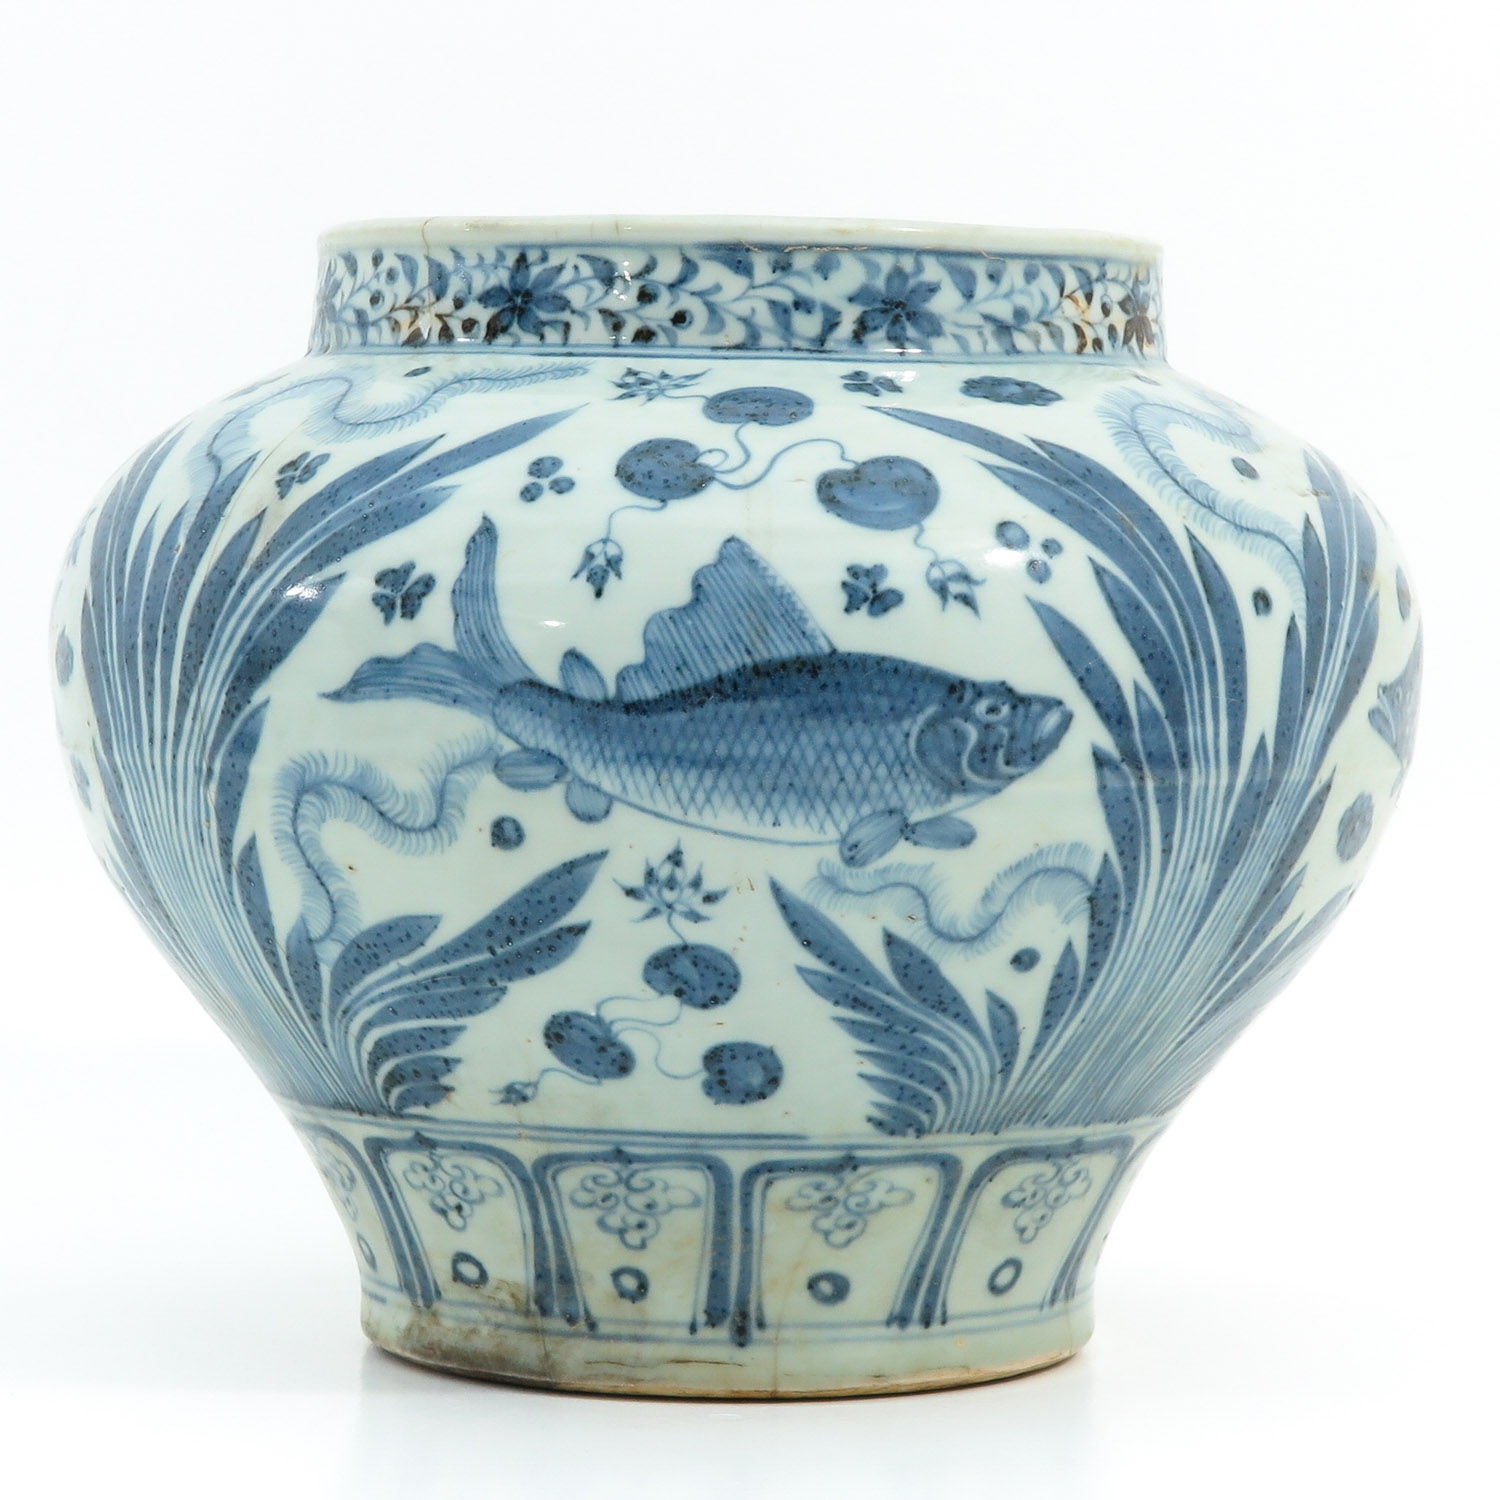 A Blue and White Jar - Image 4 of 9